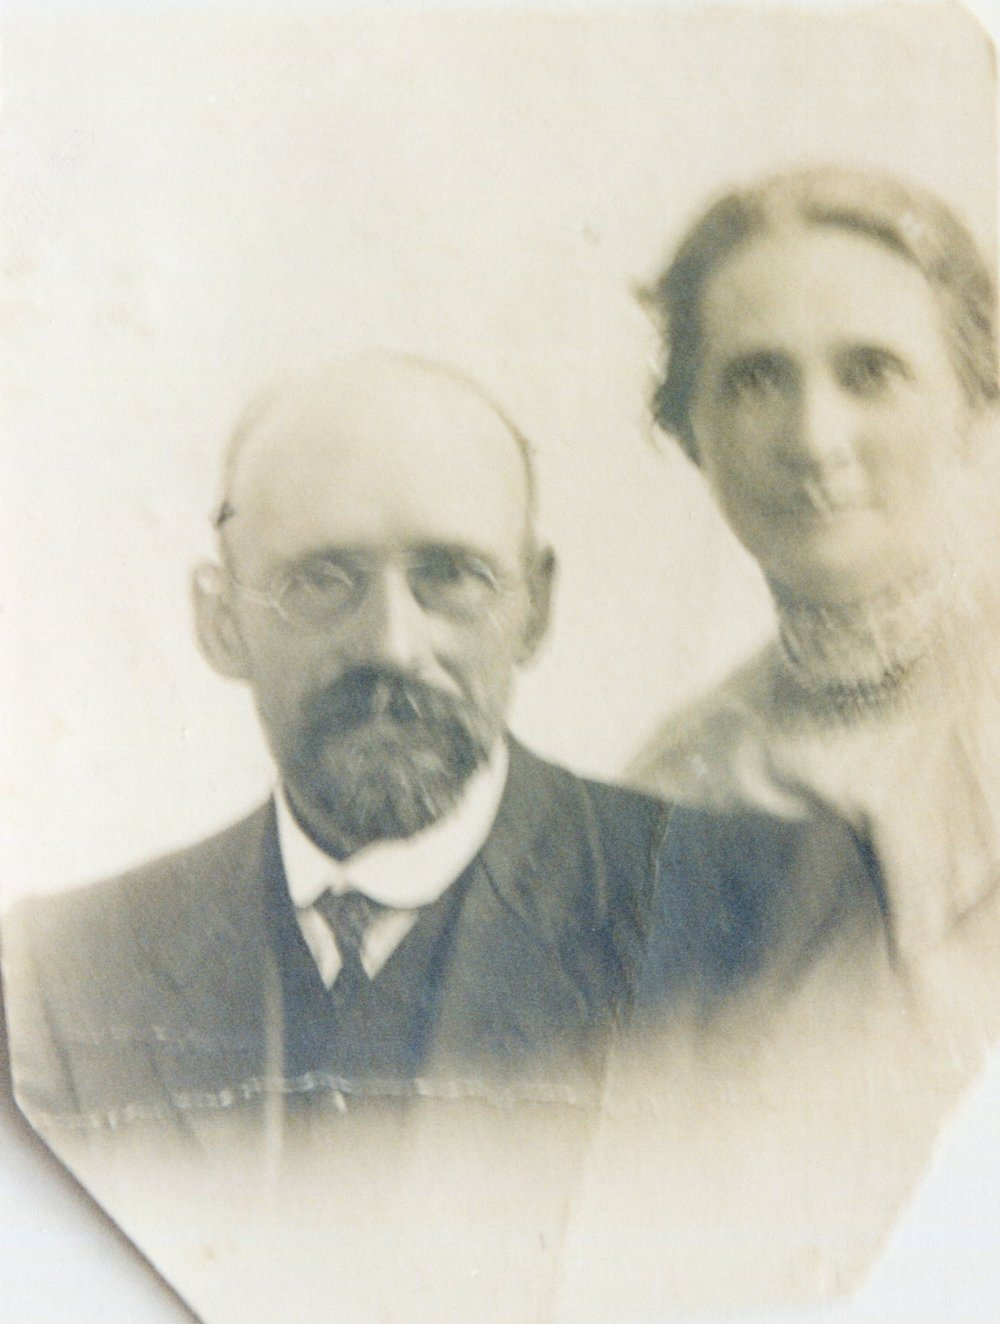 Reg's parents, Robert and Annie Walters